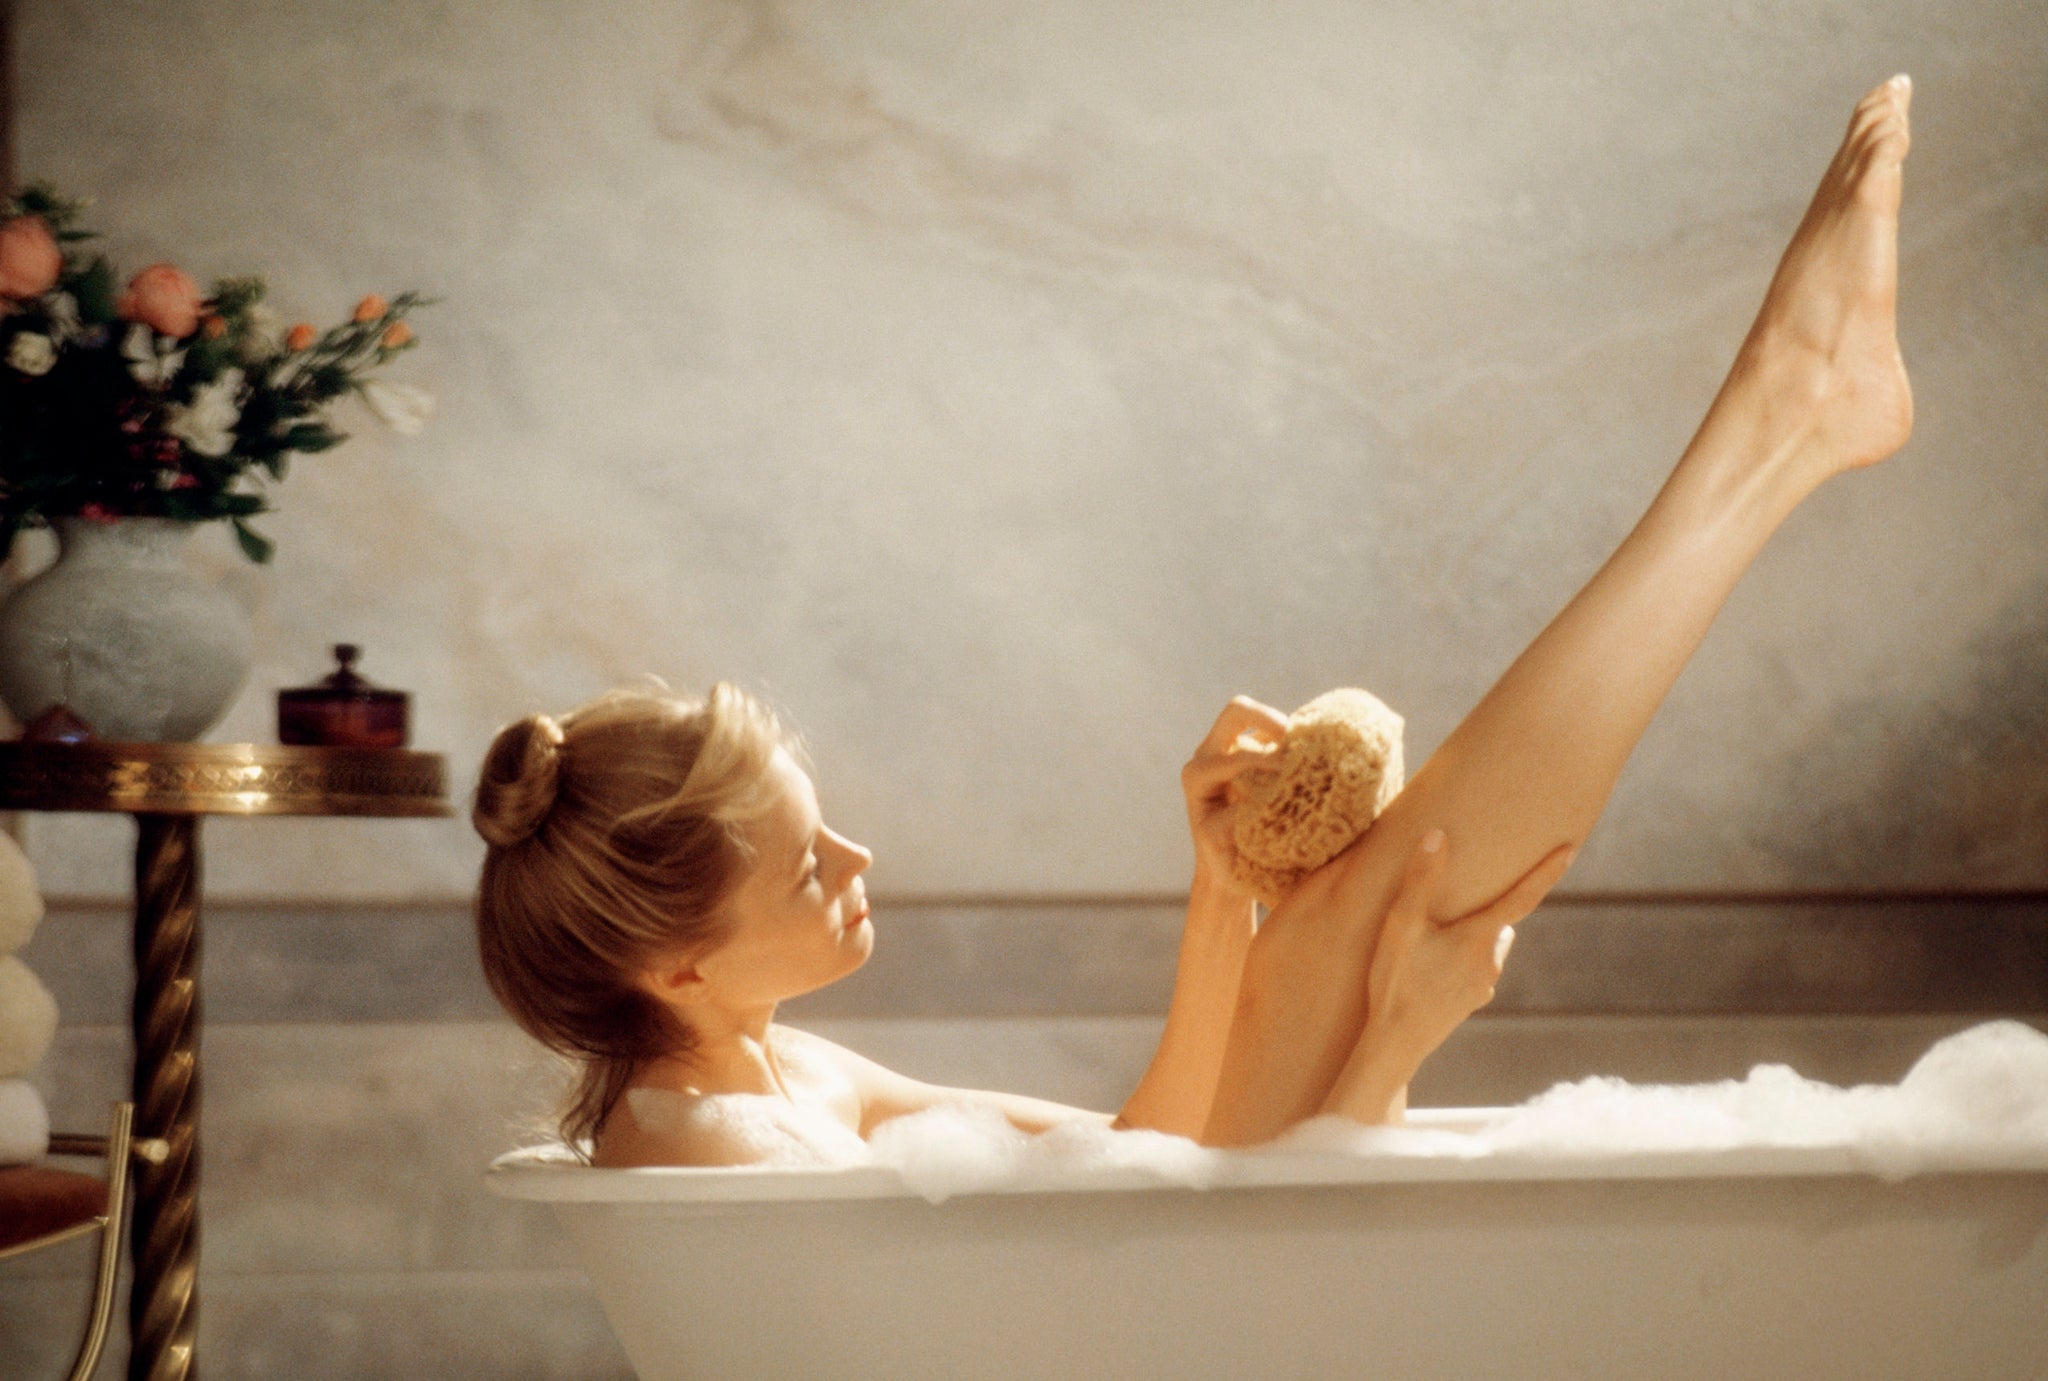 Girl in a bubble bath